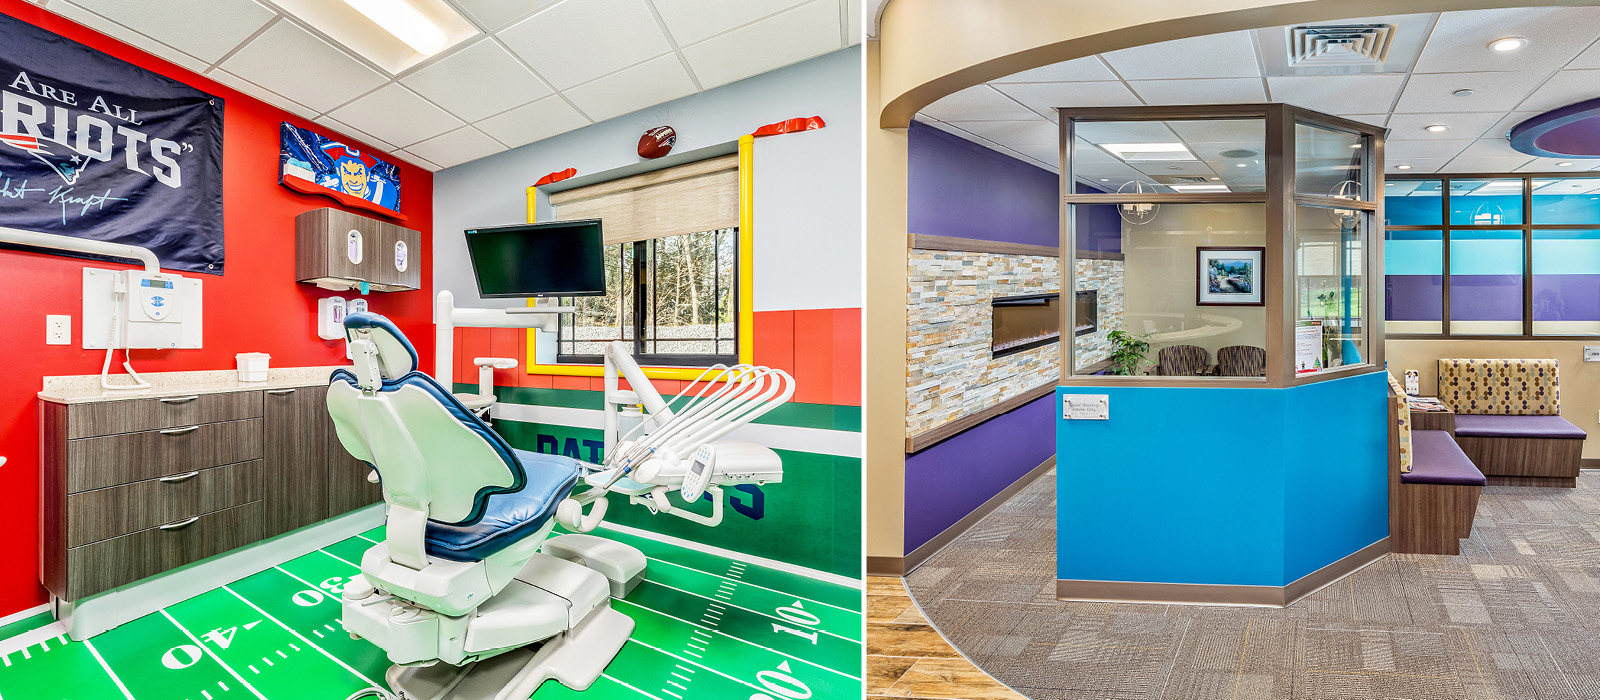 Theroux Dental football-themed treatment area